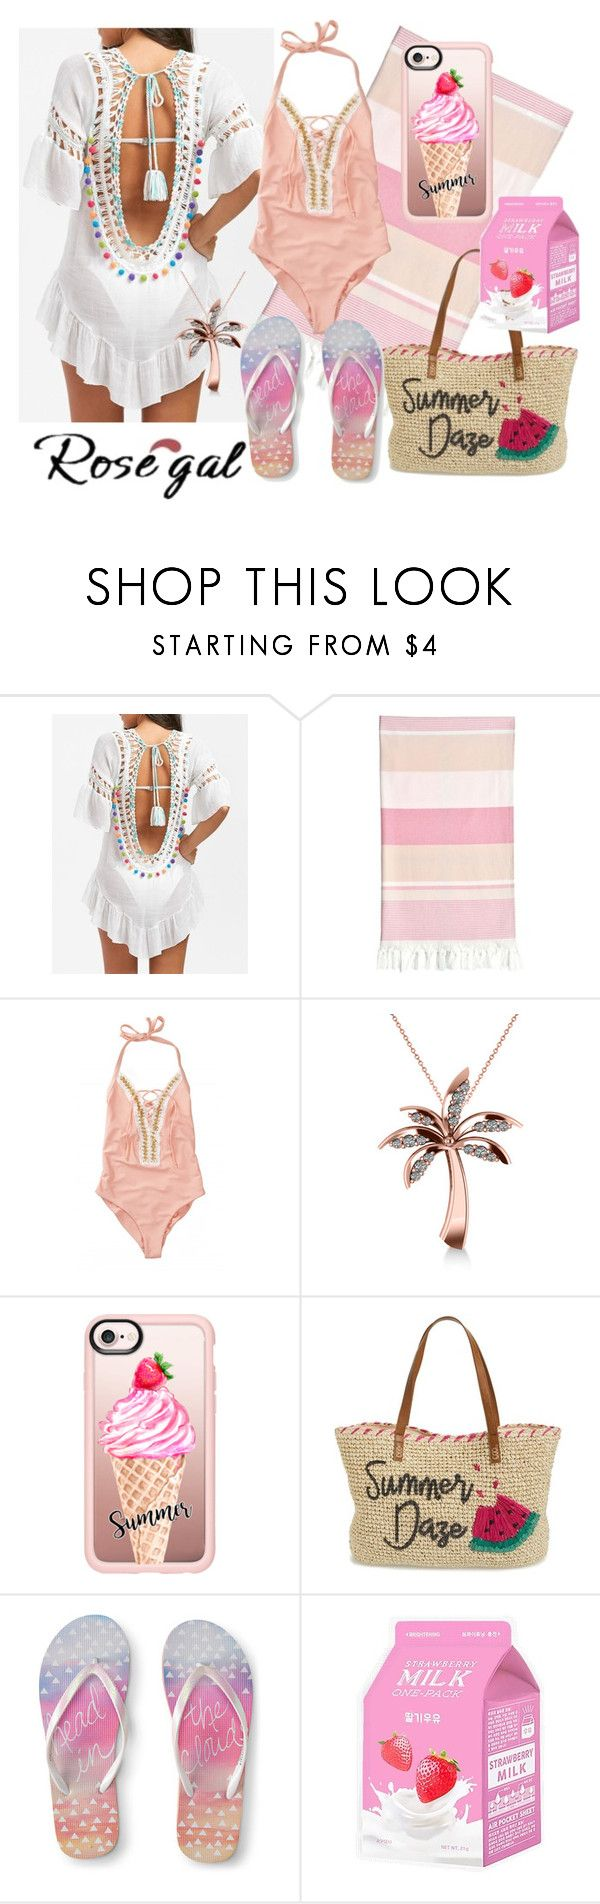 """Cover up kaftan"" by subvilli on Polyvore featuring Linum Home Textiles, Beach Bunny, Allurez, Casetify, Nordstrom, Aéropostale and Charlotte Russe"